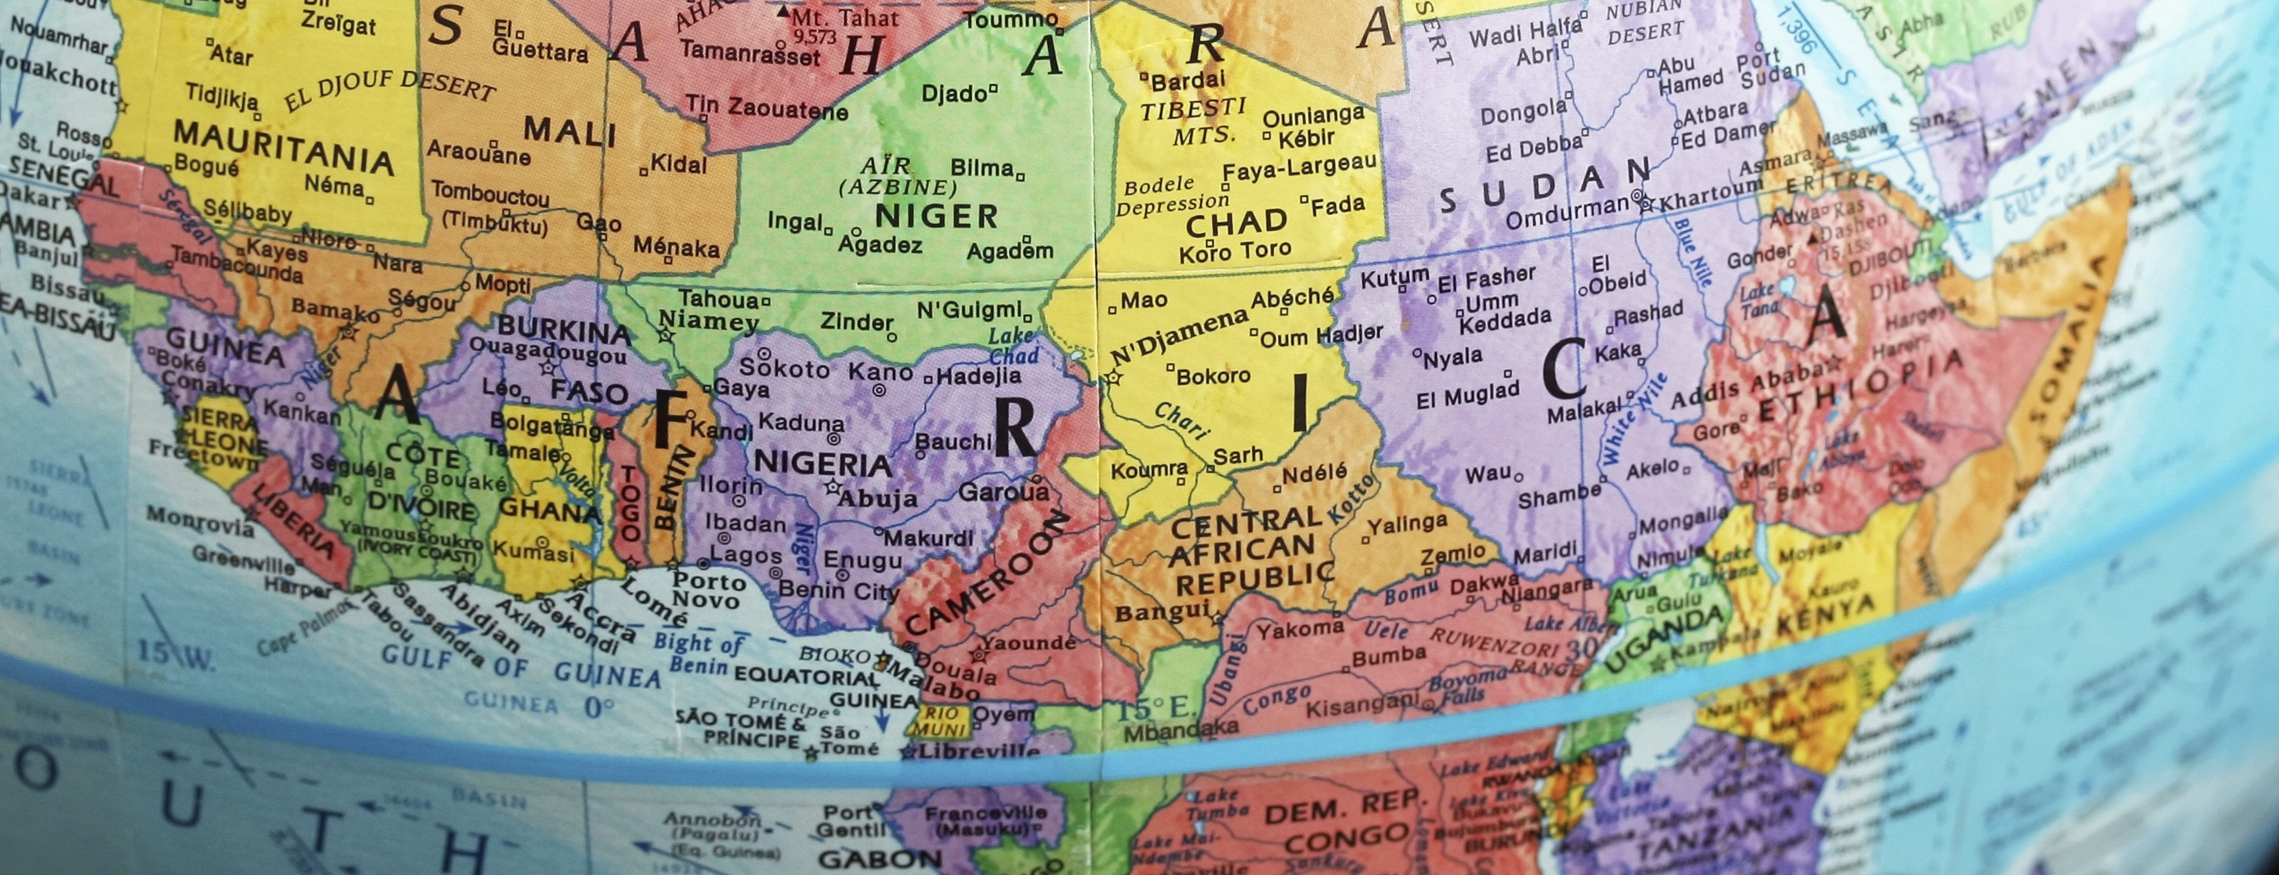 The Powerful 'Open Data for Africa' Platform Fully Rolled Out